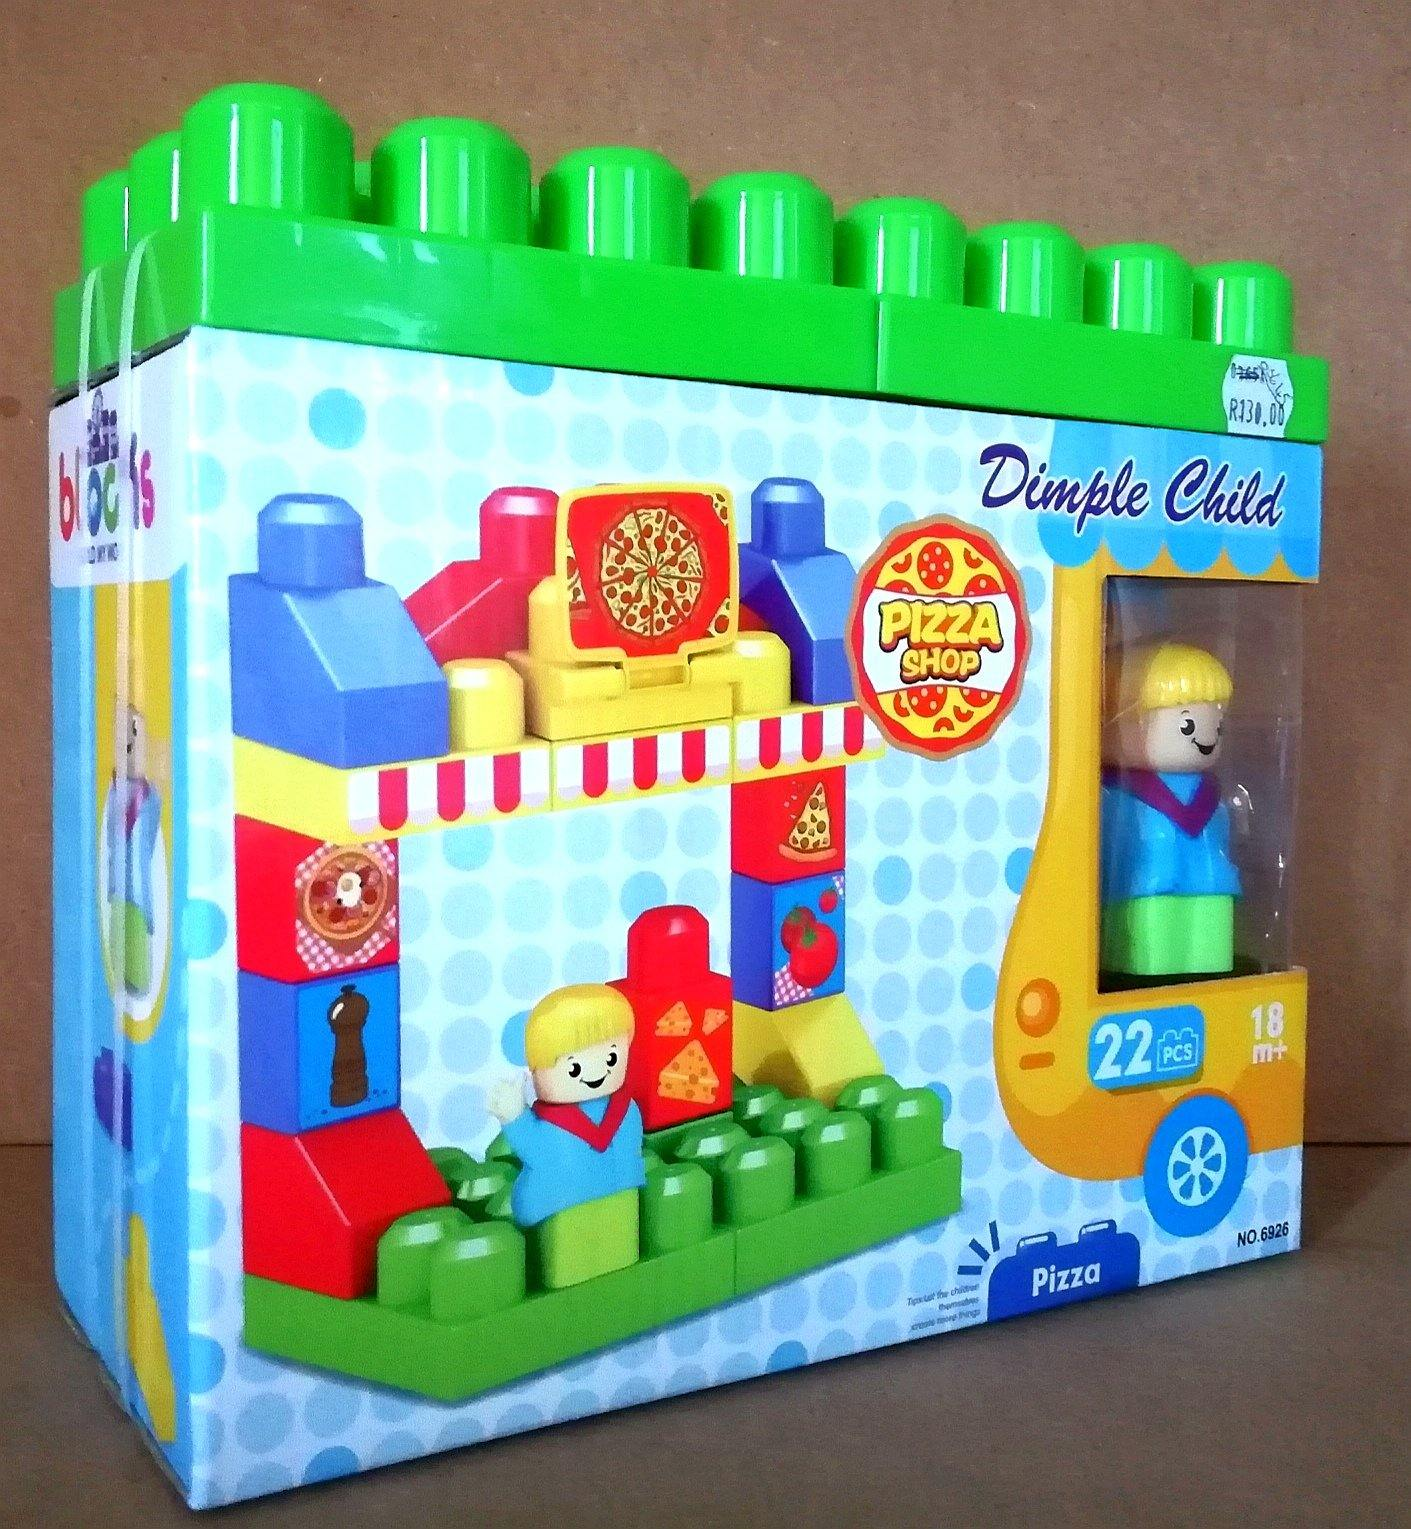 Blocks 22pc -Dimple child - Pizza